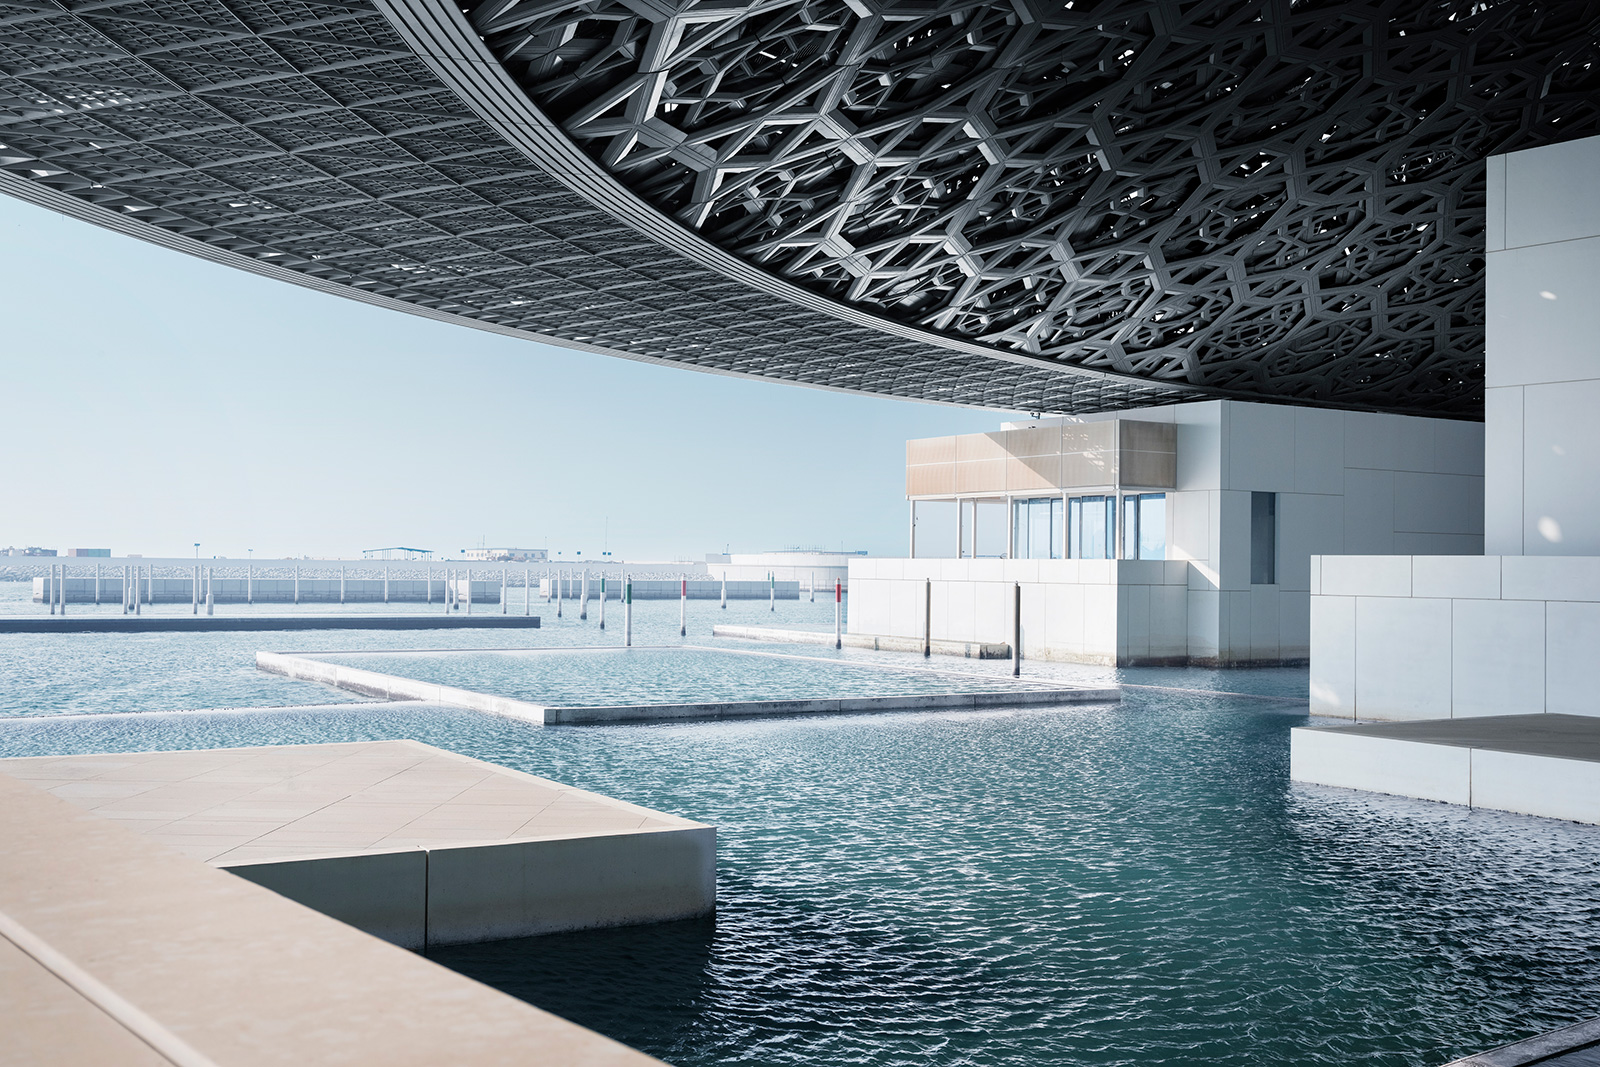 Louvre Abu Dhabi roof dome